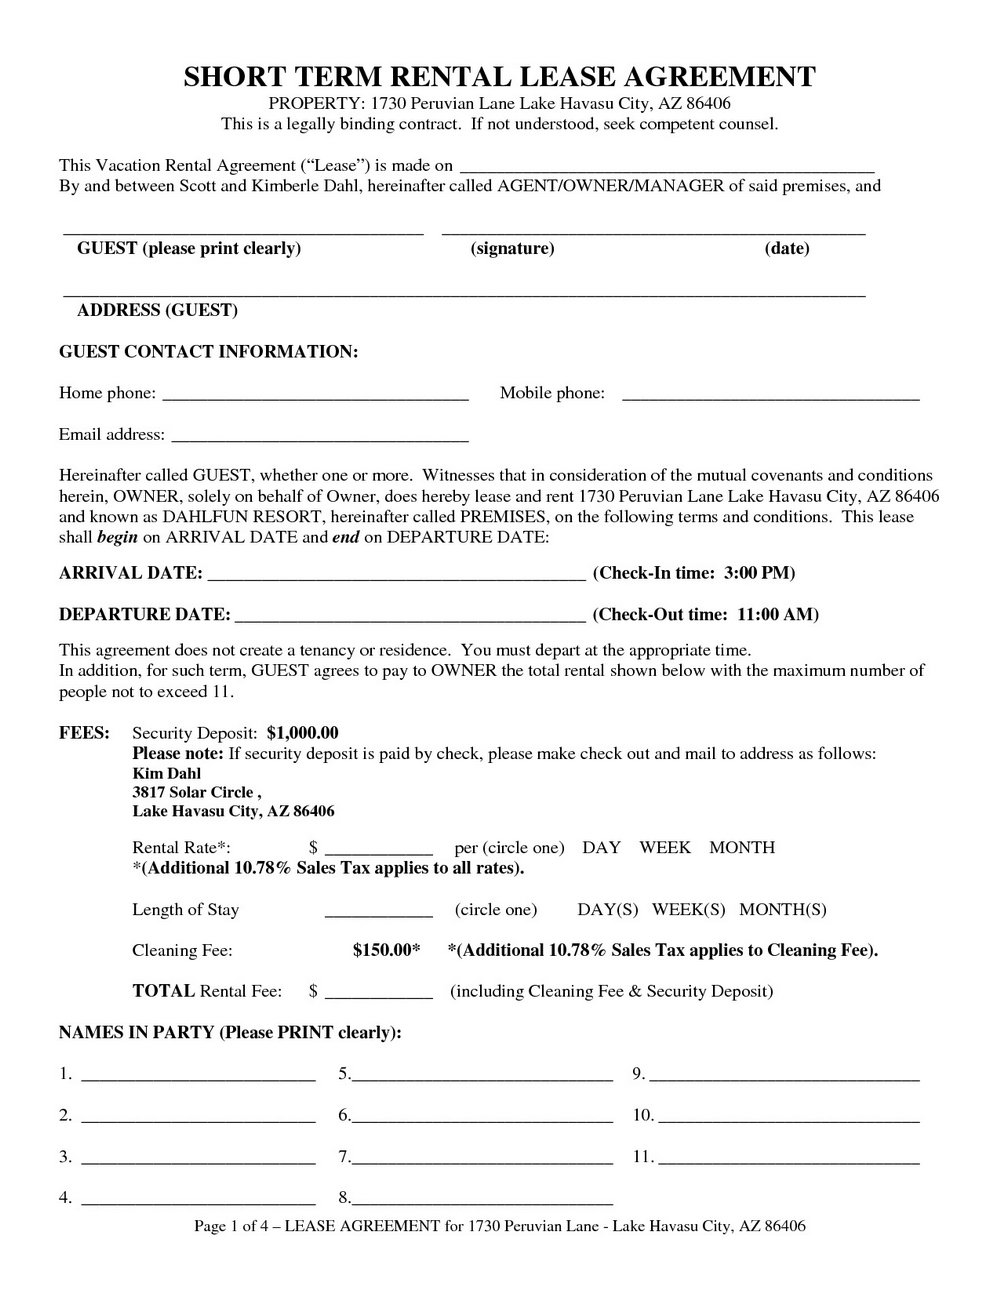 Short Form Commercial Lease Agreement